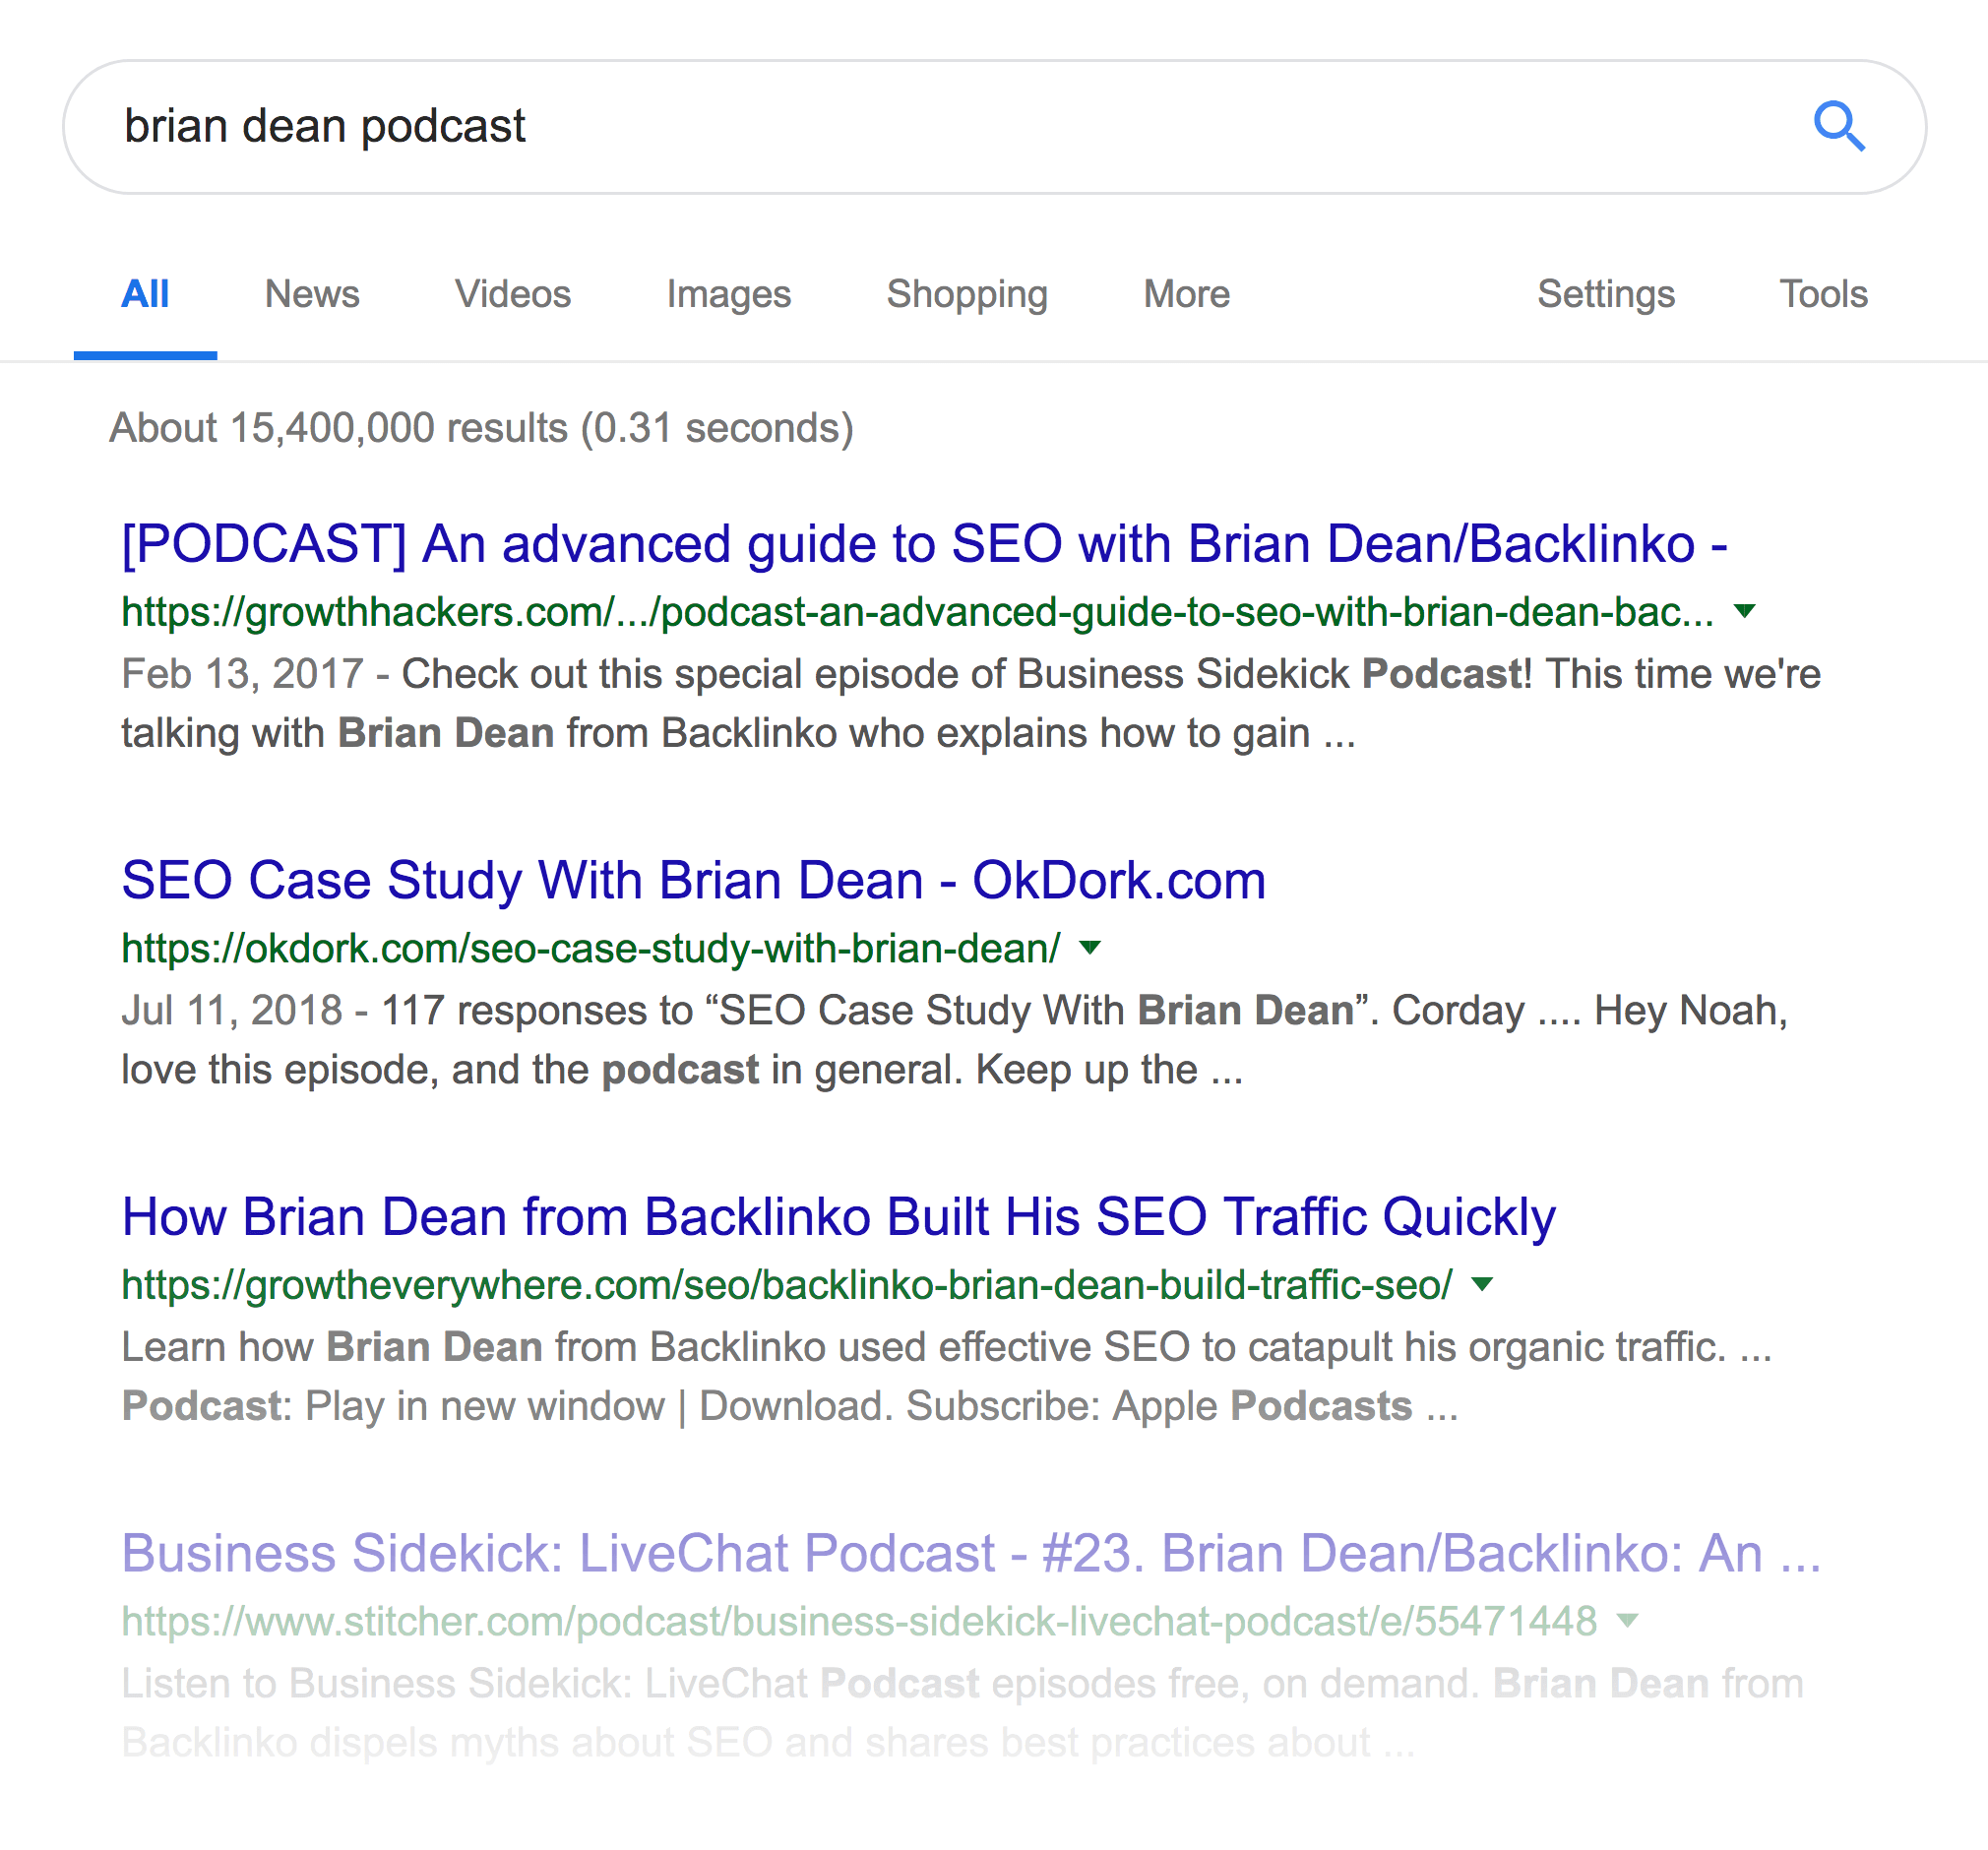 """brian dean podcast"" SERPs"